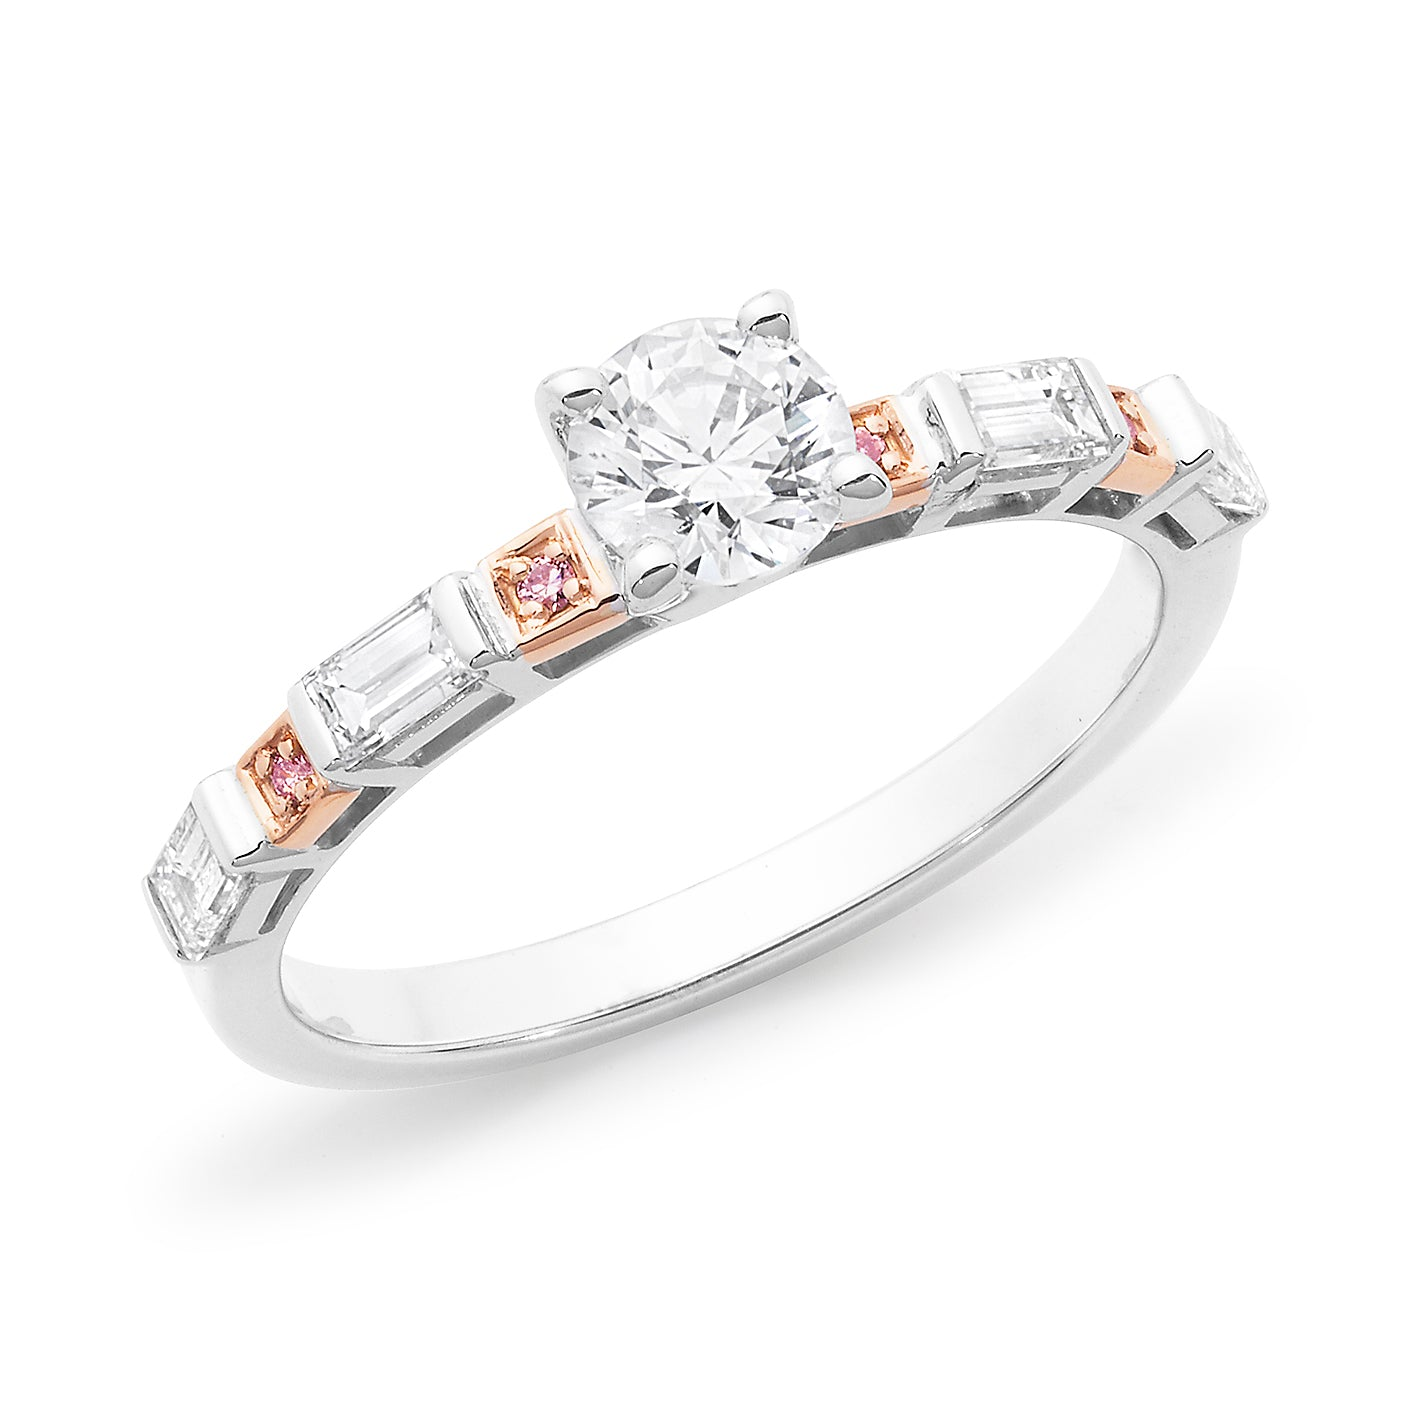 DIAMOND CLAW/BEAD SET RBC RING PINK CAVIAR IN 18CT WHITE & ROSE GOLD (0.50CT CENTRE, SI GH) TDW 0.92CT